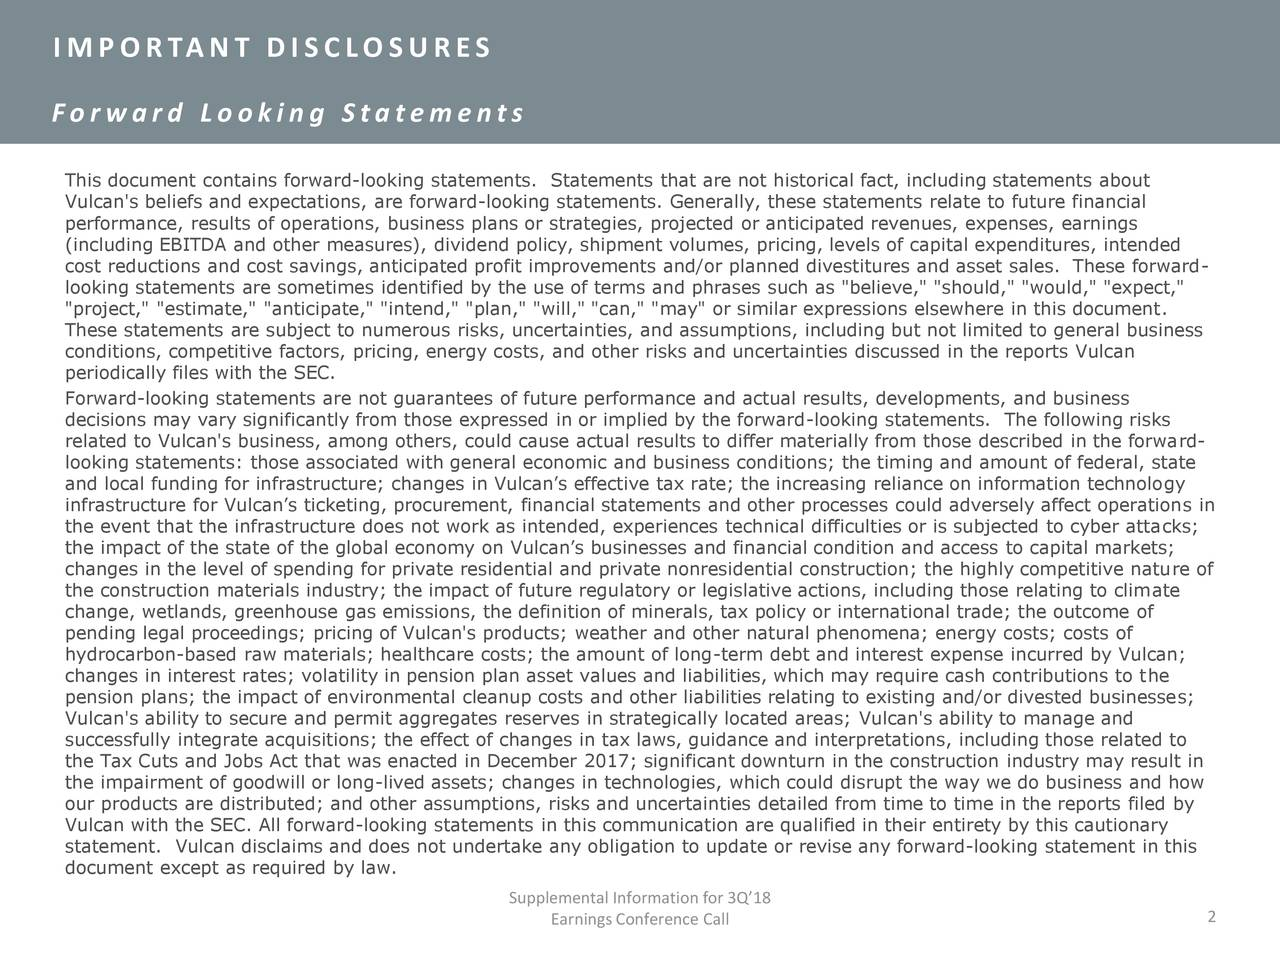 """For war d Looki ng Statements This document contains forward-looking statements. Statements that are not historical fact, including statements about Vulcan's beliefs and expectations, are forward-looking statements. Generally, these statements relate to future financial performance, results of operations, business plans or strategies, projected or anticipated revenues, expenses, earnings (including EBITDA and other measures), dividend policy, shipment volumes, pricing, levels of capital expenditures, intended cost reductions and cost savings, anticipated profit improvements and/or planned divestitures and asset sales. These forward- looking statements are sometimes identified by the use of terms and phrases such as """"believe,"""" """"should,"""" """"would,"""" """"expect,"""" """"project,"""" """"estimate,"""" """"anticipate,"""" """"intend,"""" """"plan,"""" """"will,"""" """"can,"""" """"may"""" or similar expressions elsewhere in this document. These statements are subject to numerous risks, uncertainties, and assumptions, including but not limited to general business conditions, competitive factors, pricing, energy costs, and other risks and uncertainties discussed in the reports Vulcan periodically files with the SEC. Forward-looking statements are not guarantees of future performance and actual results, developments, and business decisions may vary significantly from those expressed in or implied by the forward-looking statements. The following risks related to Vulcan's business, among others, could cause actual results to differ materially from those described in the forward- looking statements: those associated with general economic and business conditions; the timing and amount of federal, state and local funding for infrastructure; changes in Vulcan's effective tax rate; the increasing reliance on information technology infrastructure for Vulcan's ticketing, procurement, financial statements and other processes could adversely affect operations in the event that the infrastructure does not work as intended, experiences techn"""